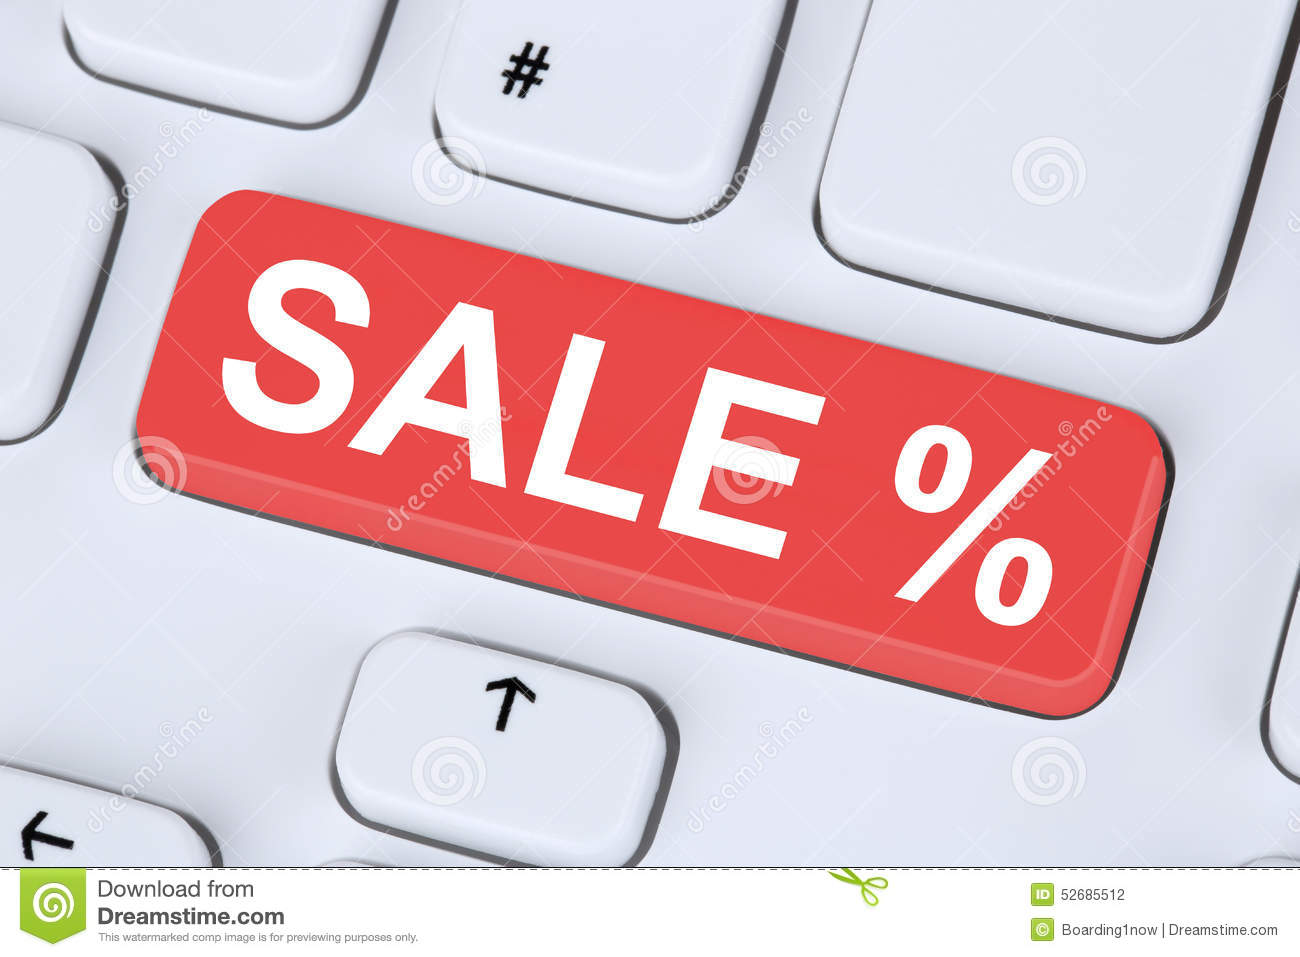 Sale discount online shopping e commerce internet shop for Photographs for sale online